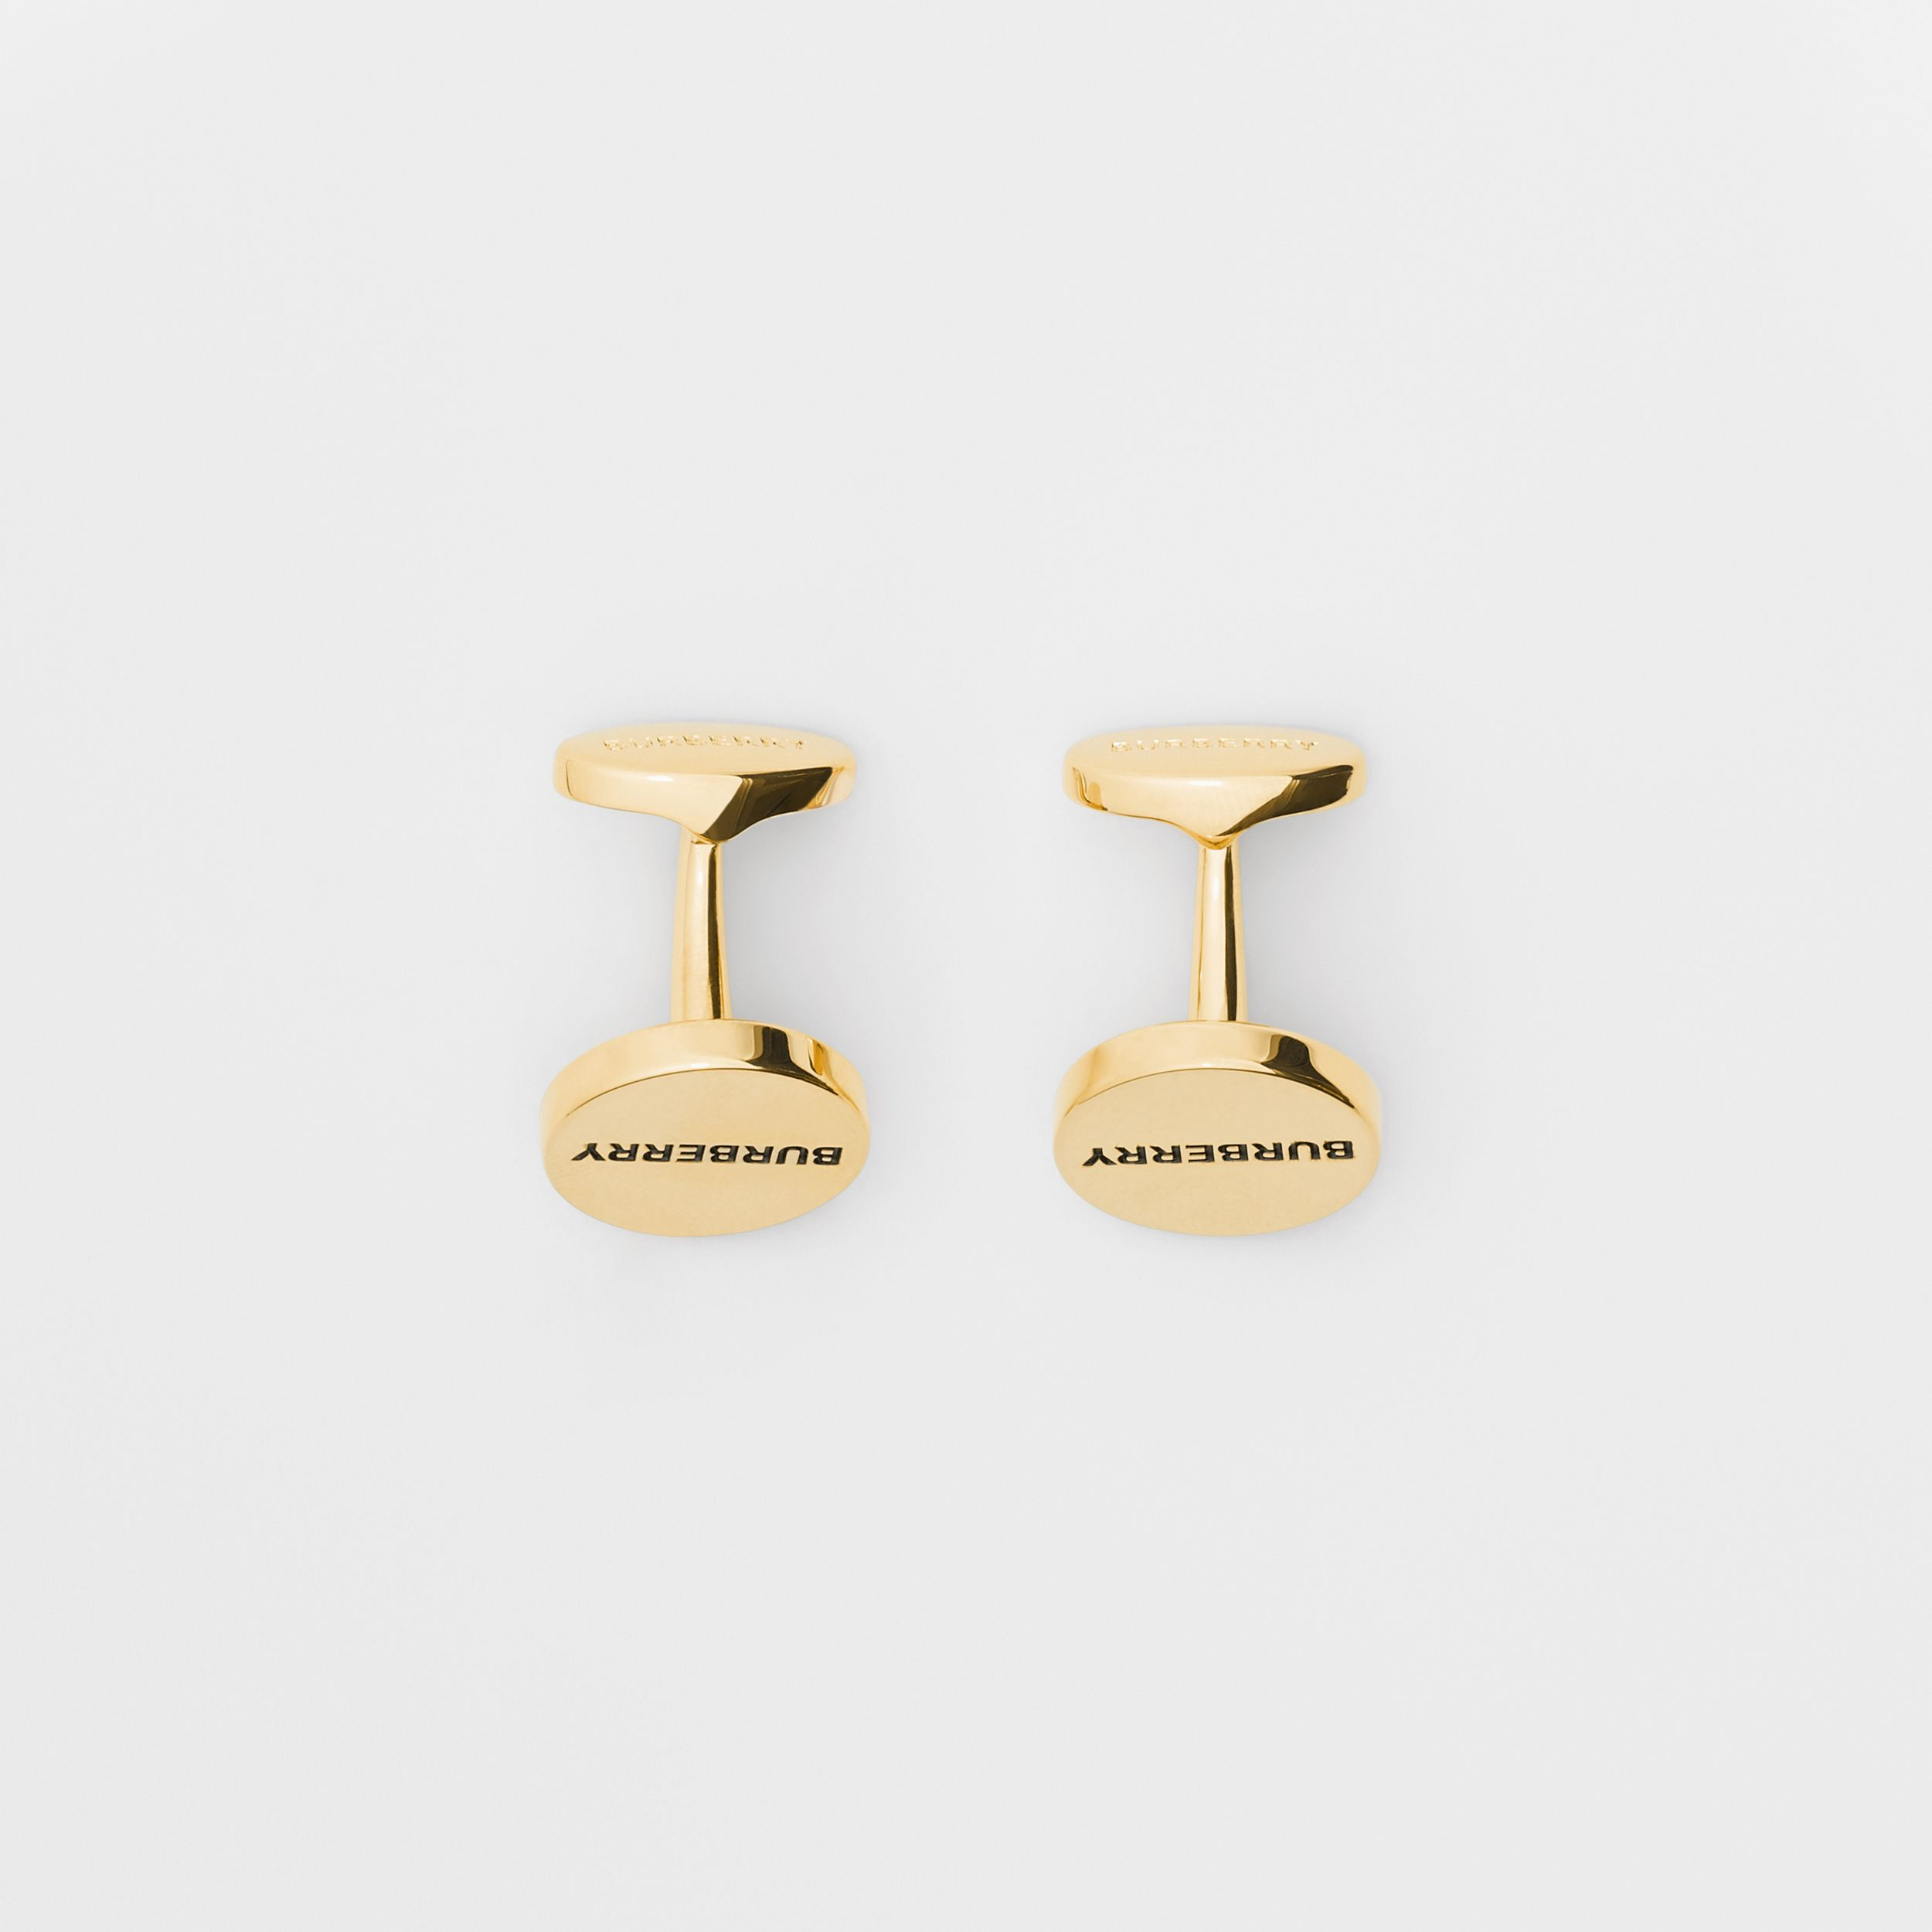 Engraved Gold-plated Cufflinks in Light - Men | Burberry Australia - 3